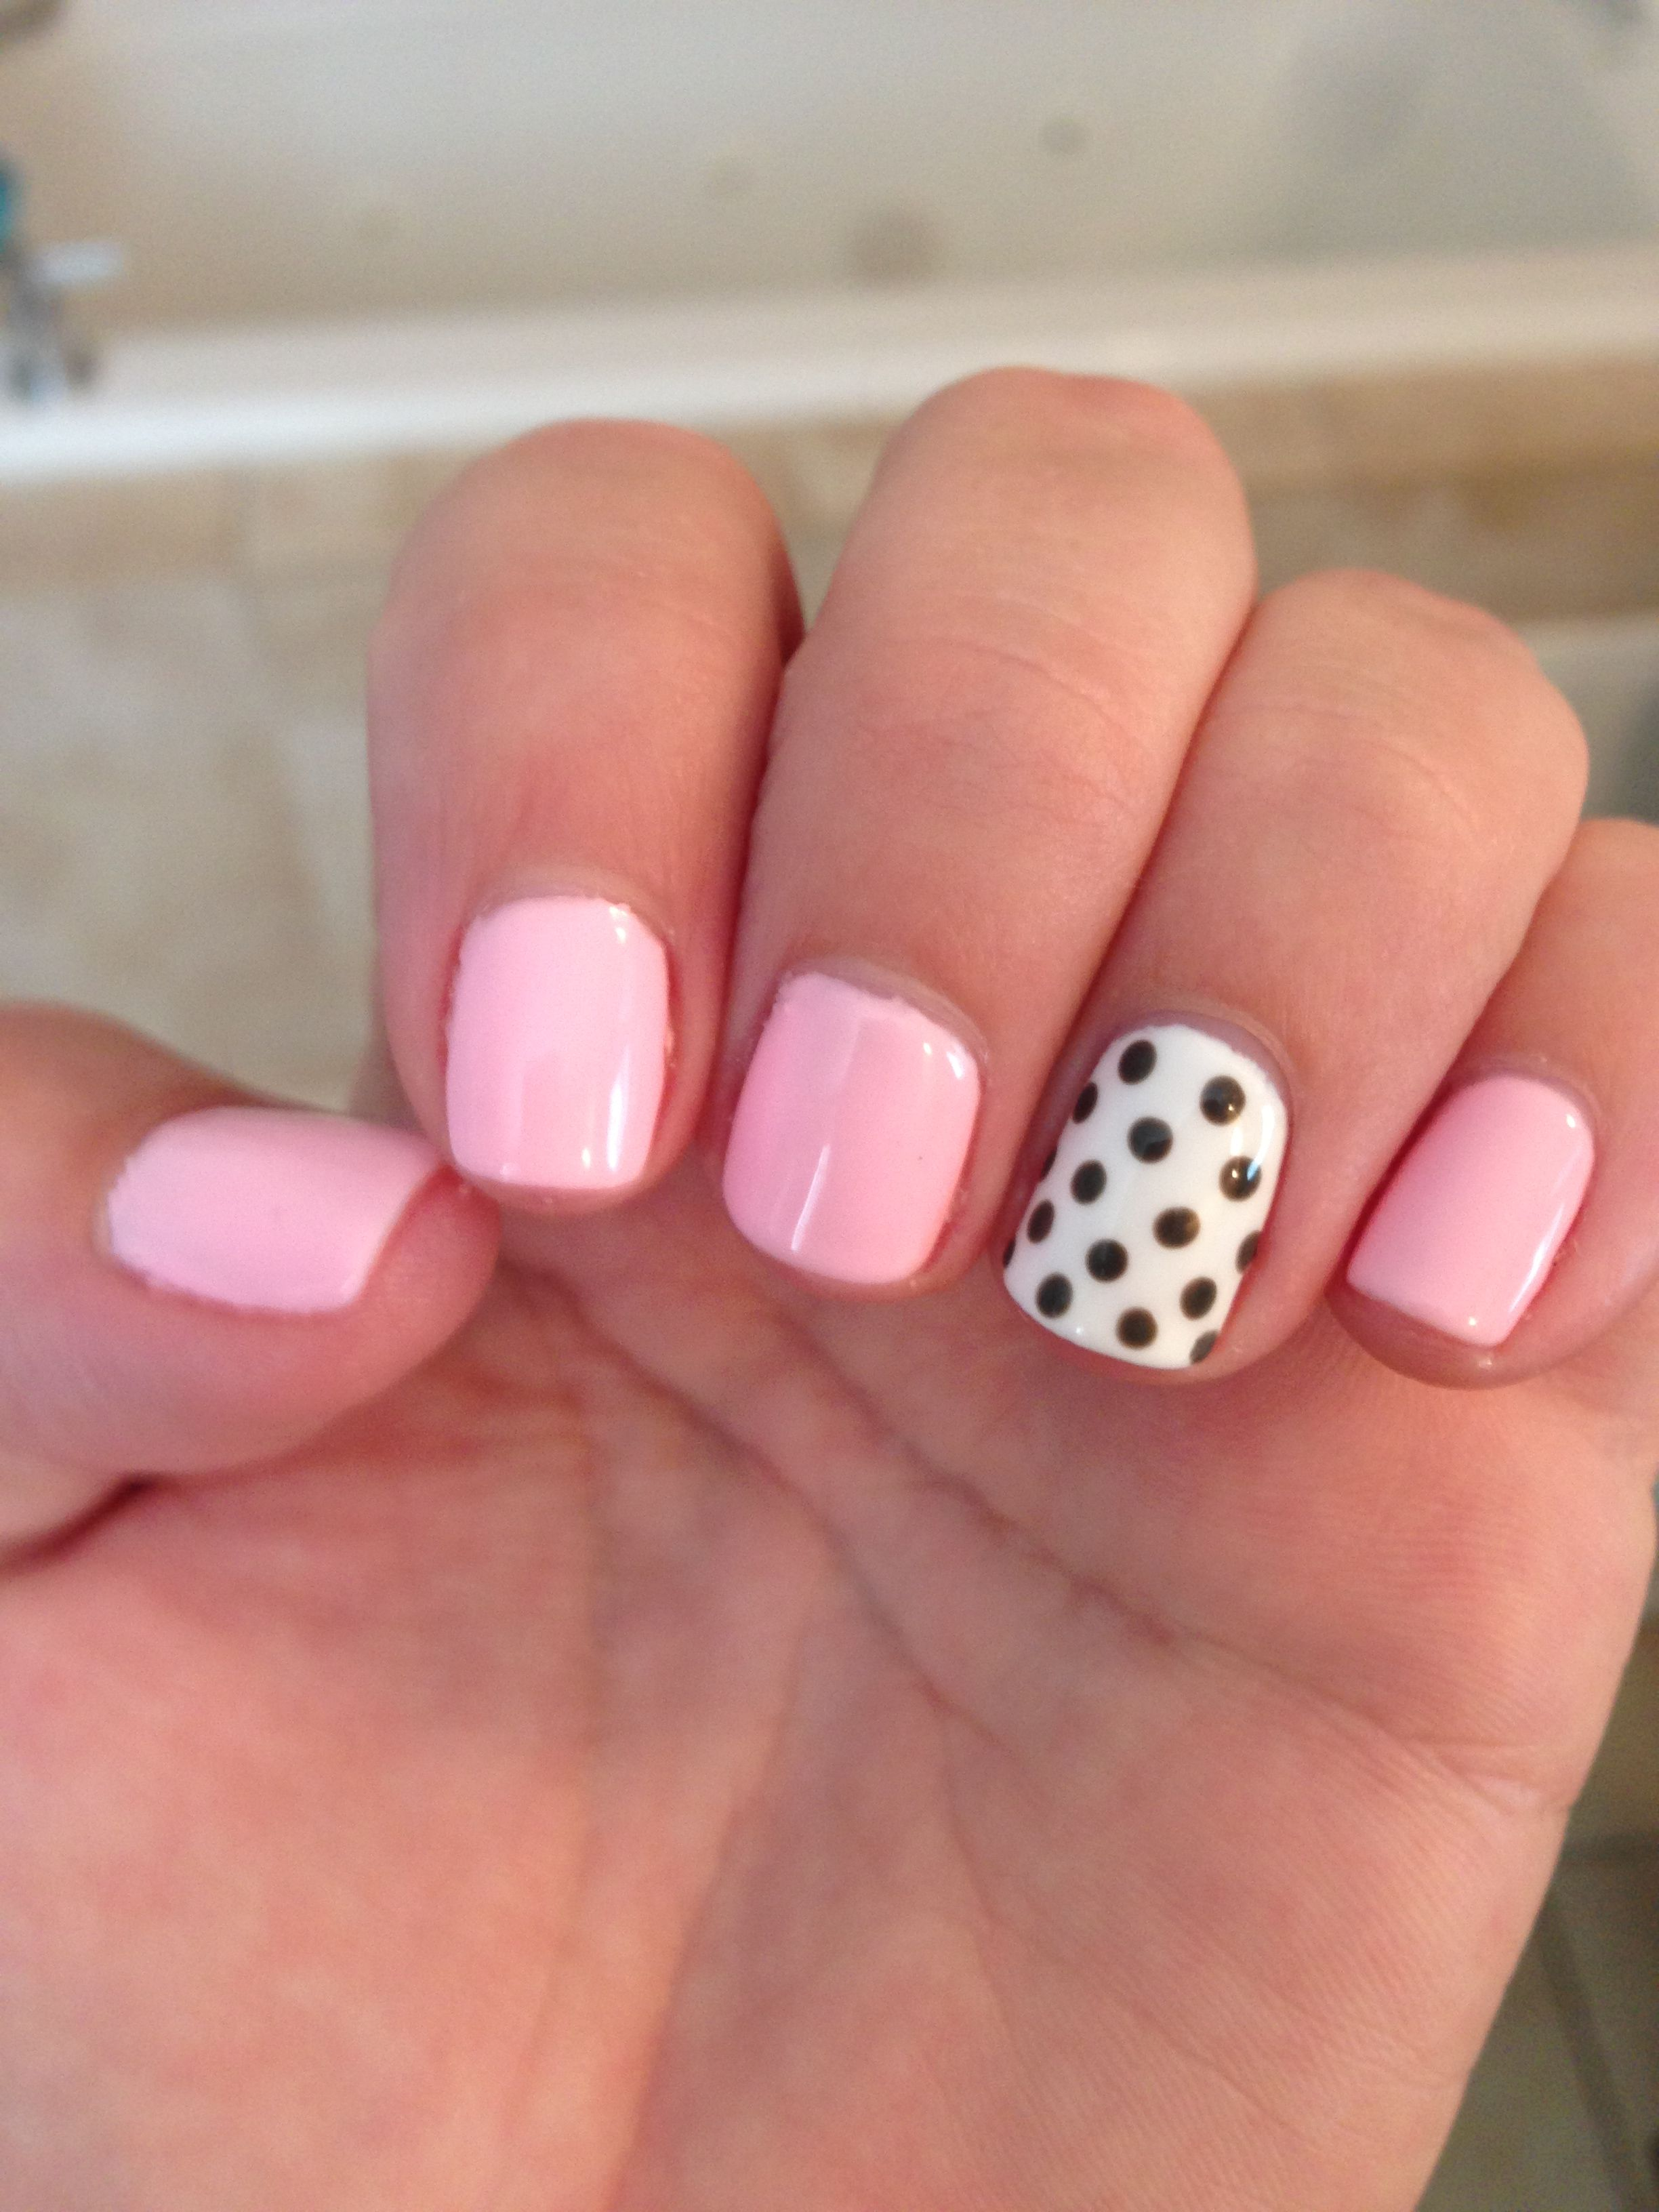 Shellac nails 28 light pink cute nails toes shellac - Cute nail art designs to do at home ...